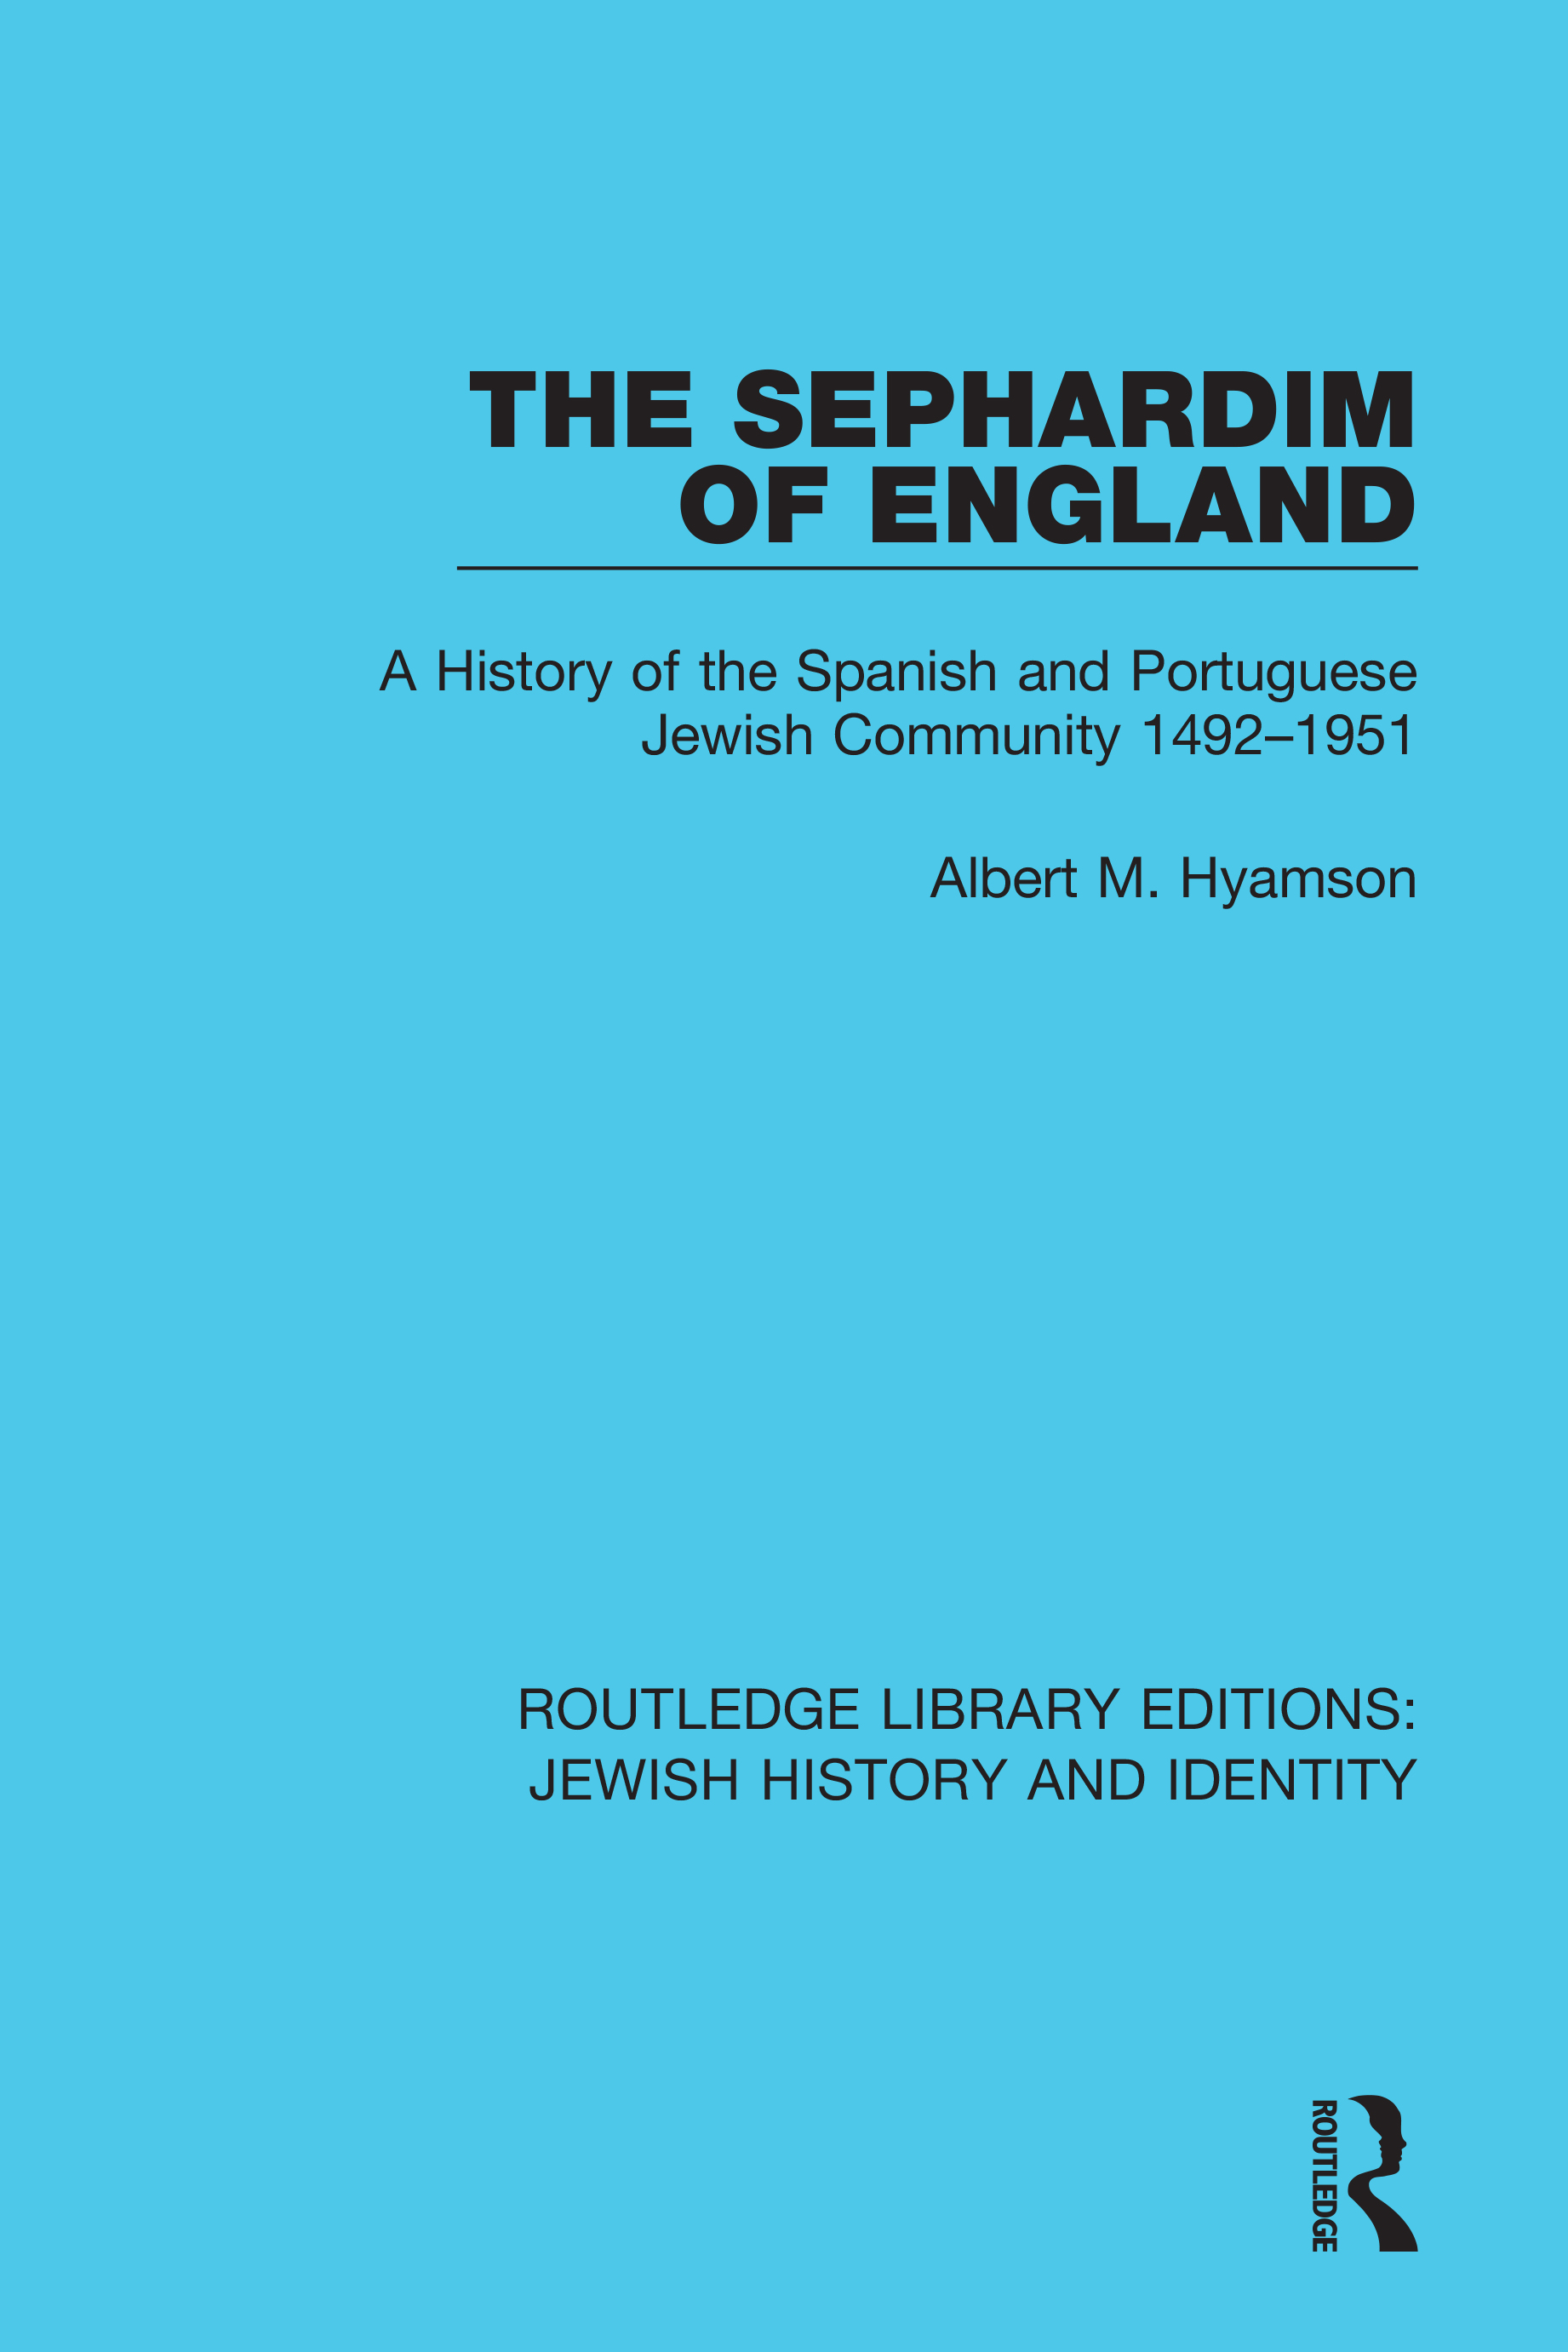 The Sephardim of England: A History of the Spanish and Portuguese Jewish Community 1492-1951 book cover